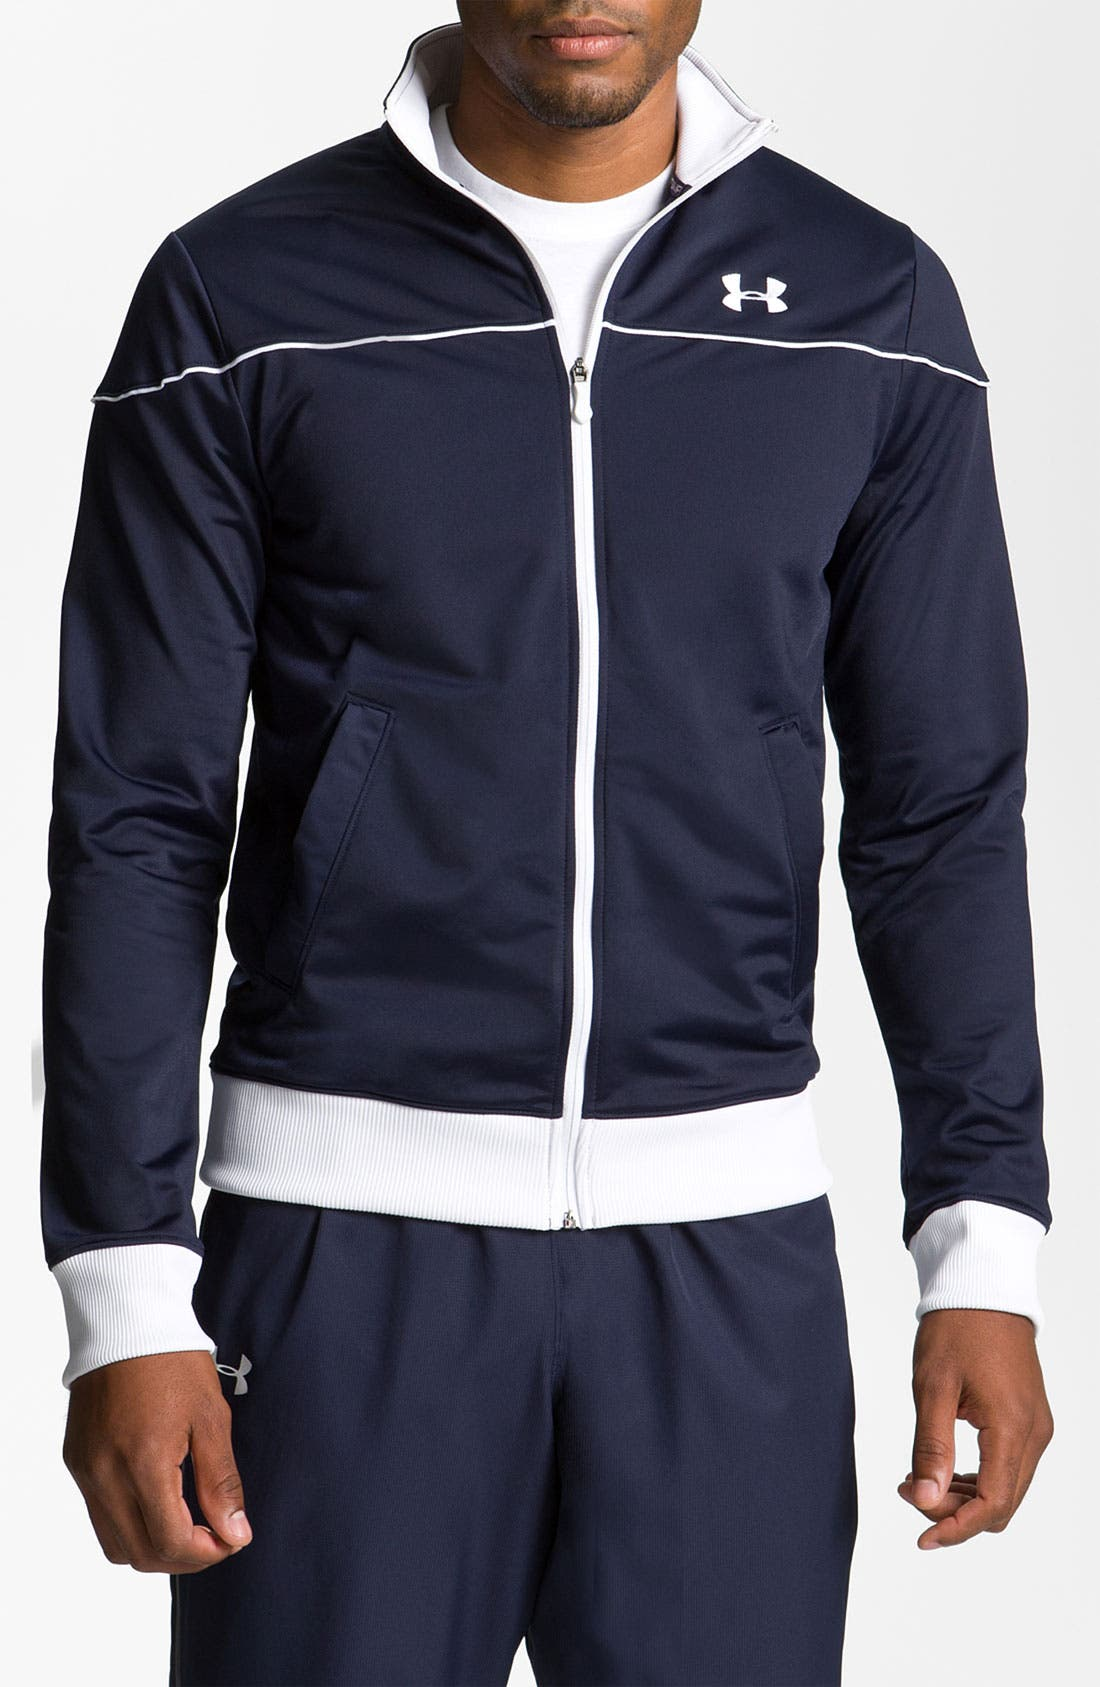 Alternate Image 1 Selected - Under Armour 'Strength' Jacket